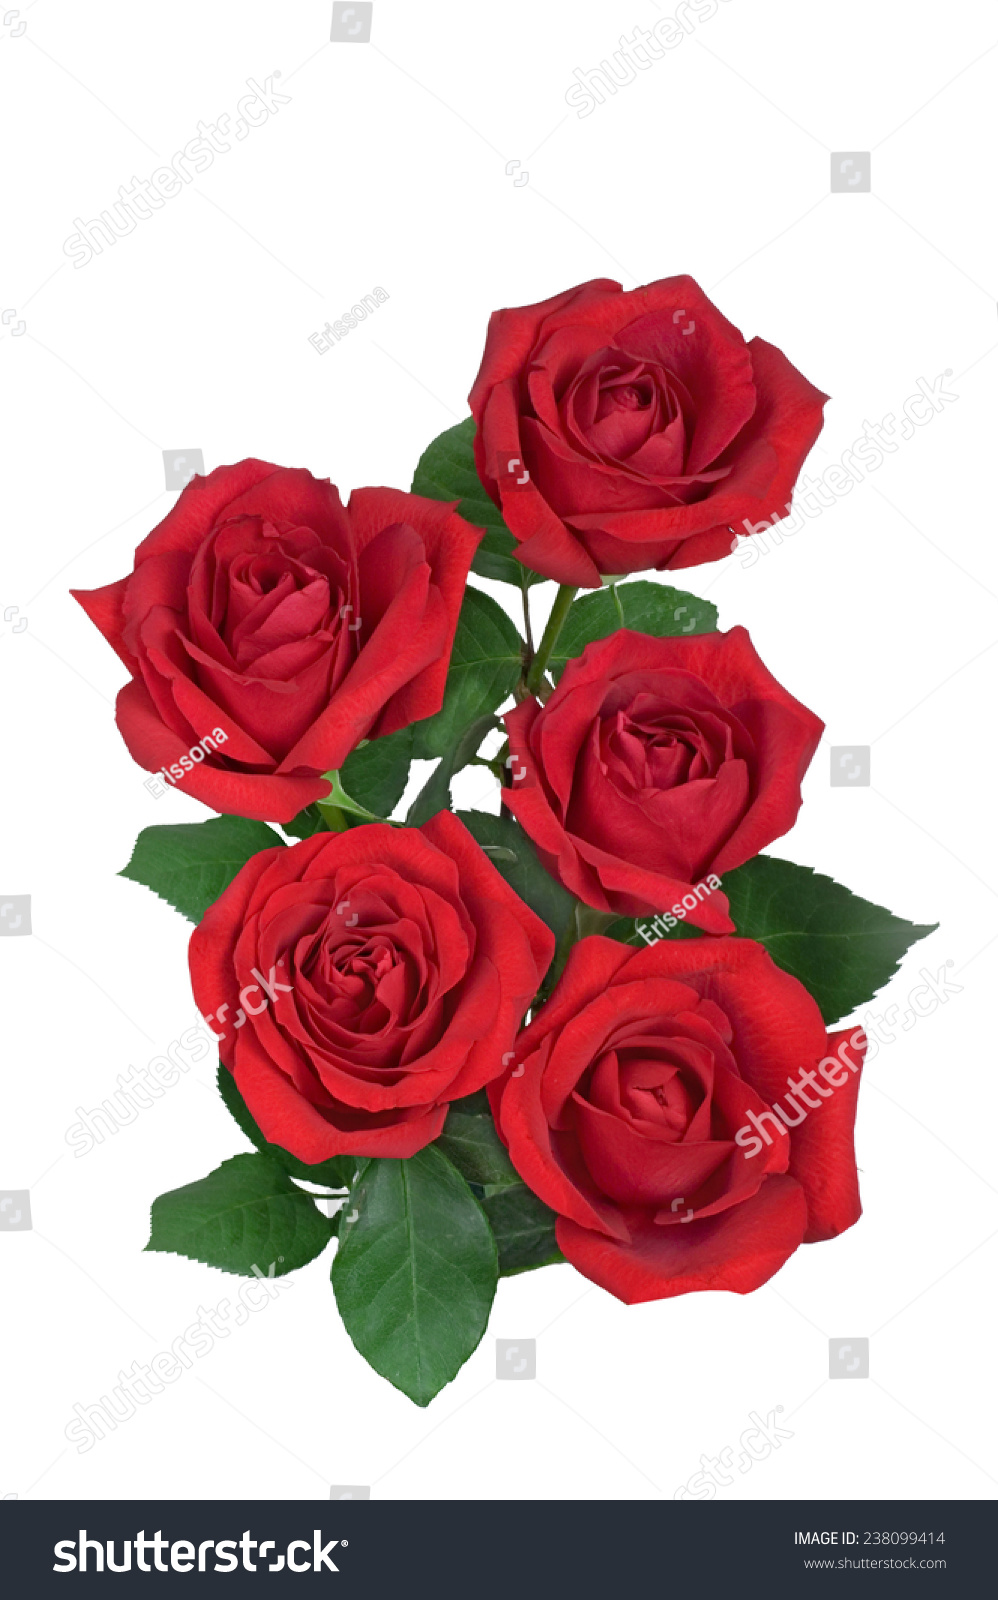 Royalty Free Red Rose Flower Bouquet Isolated On 238099414 Stock